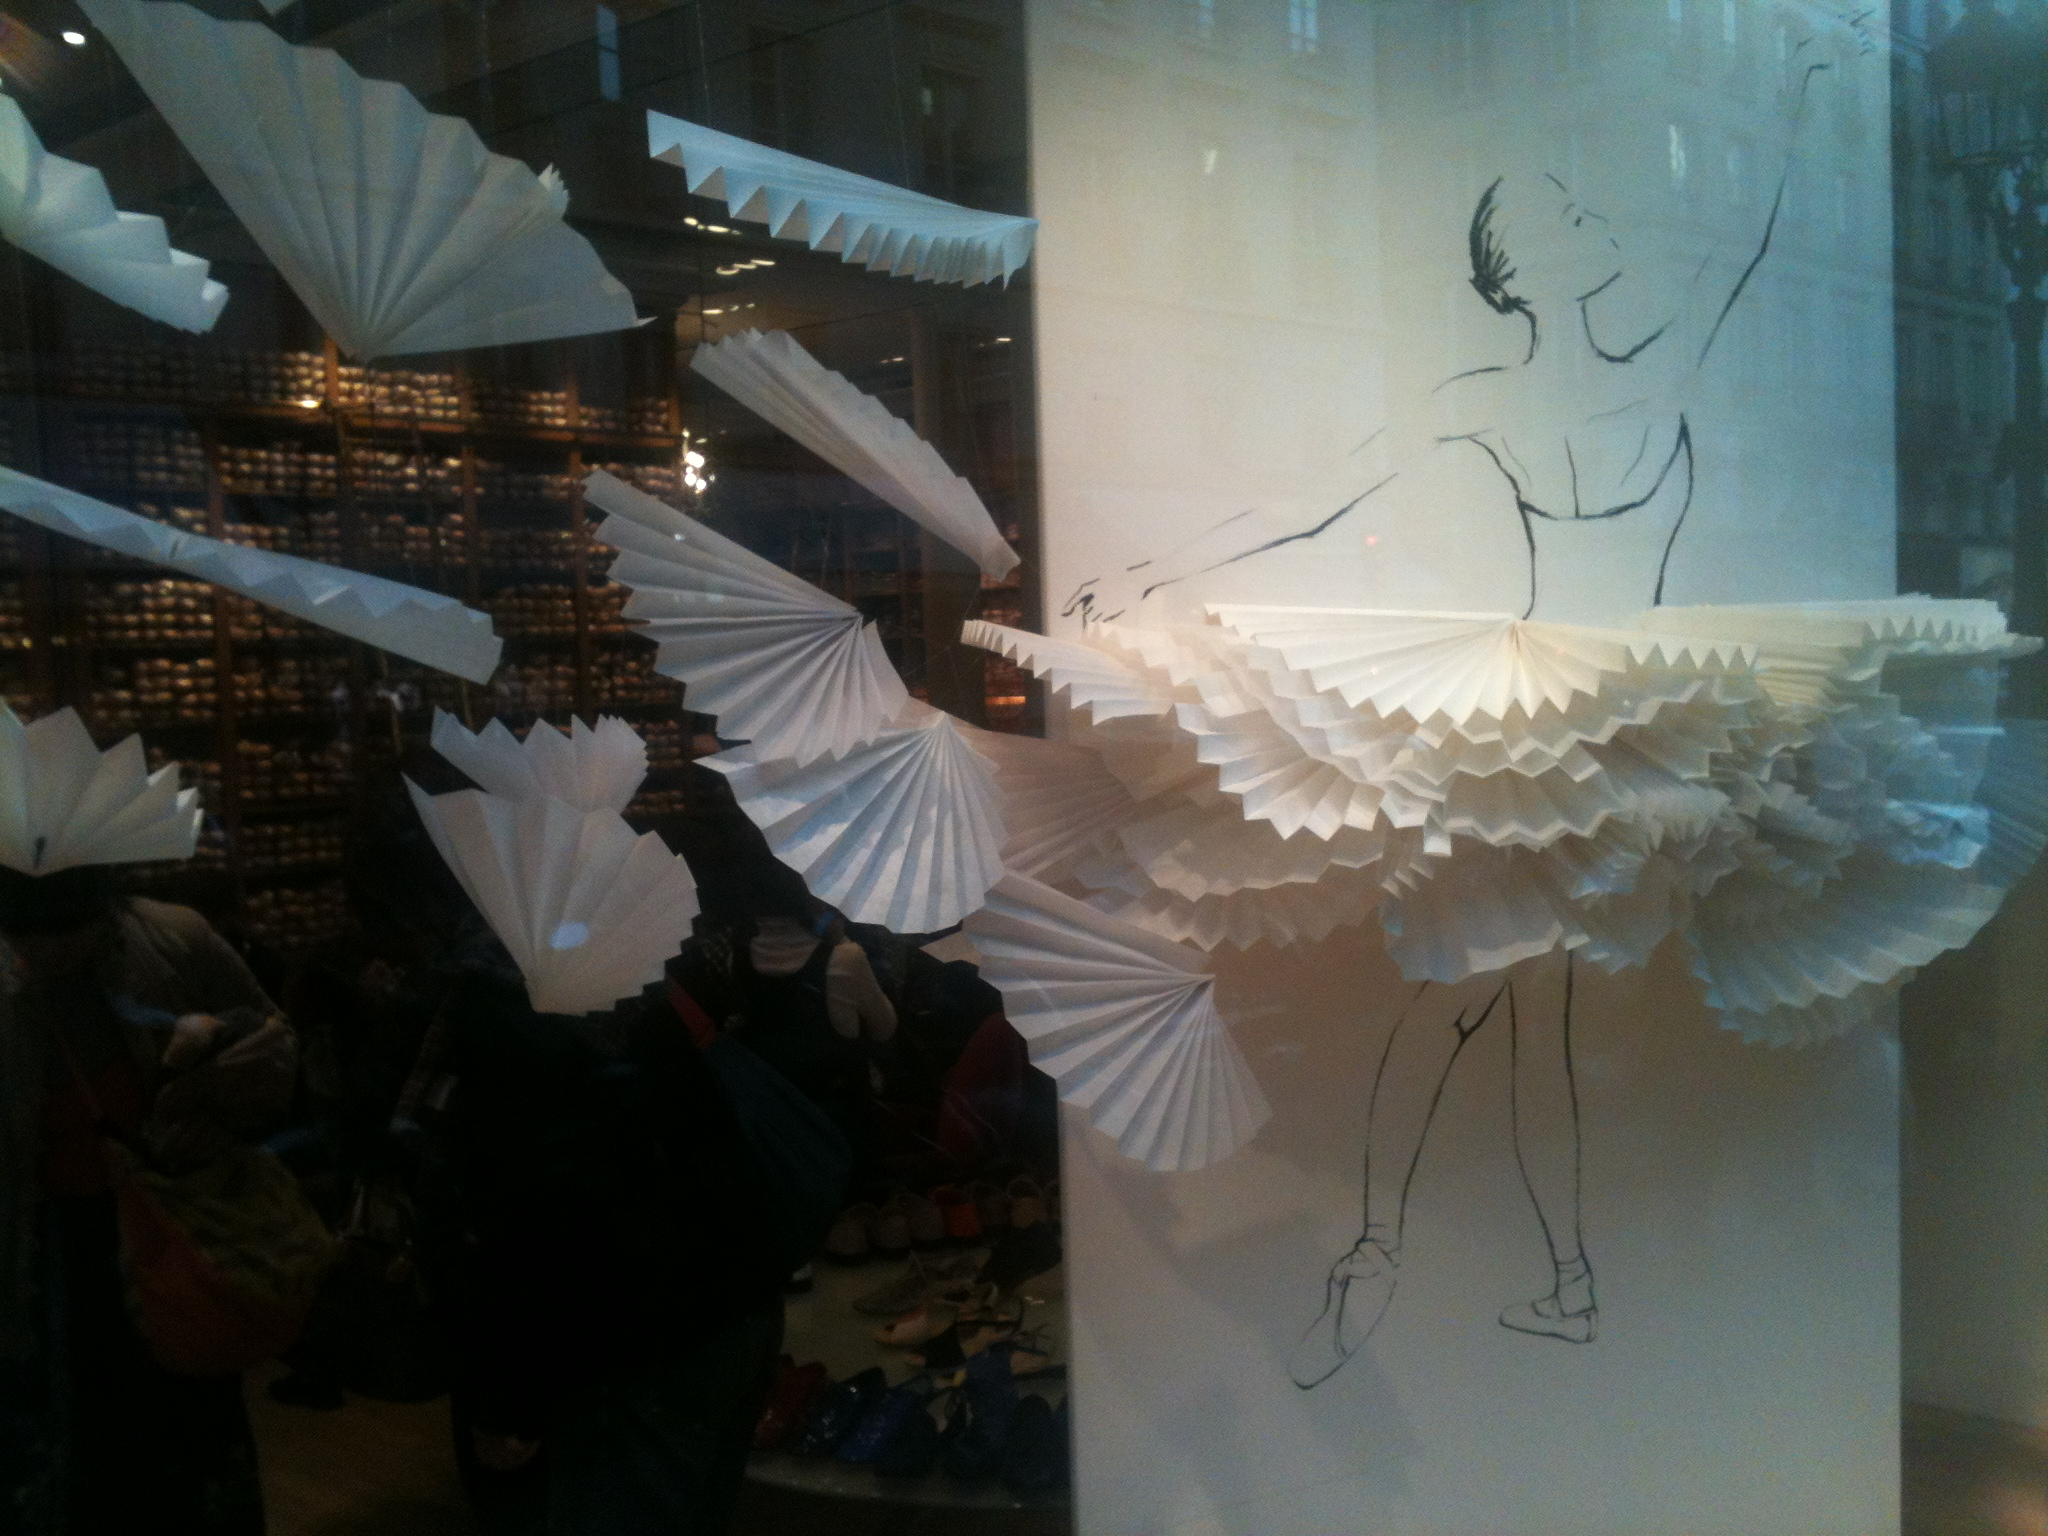 Repetto's store in Paris: always a pleasure to visit